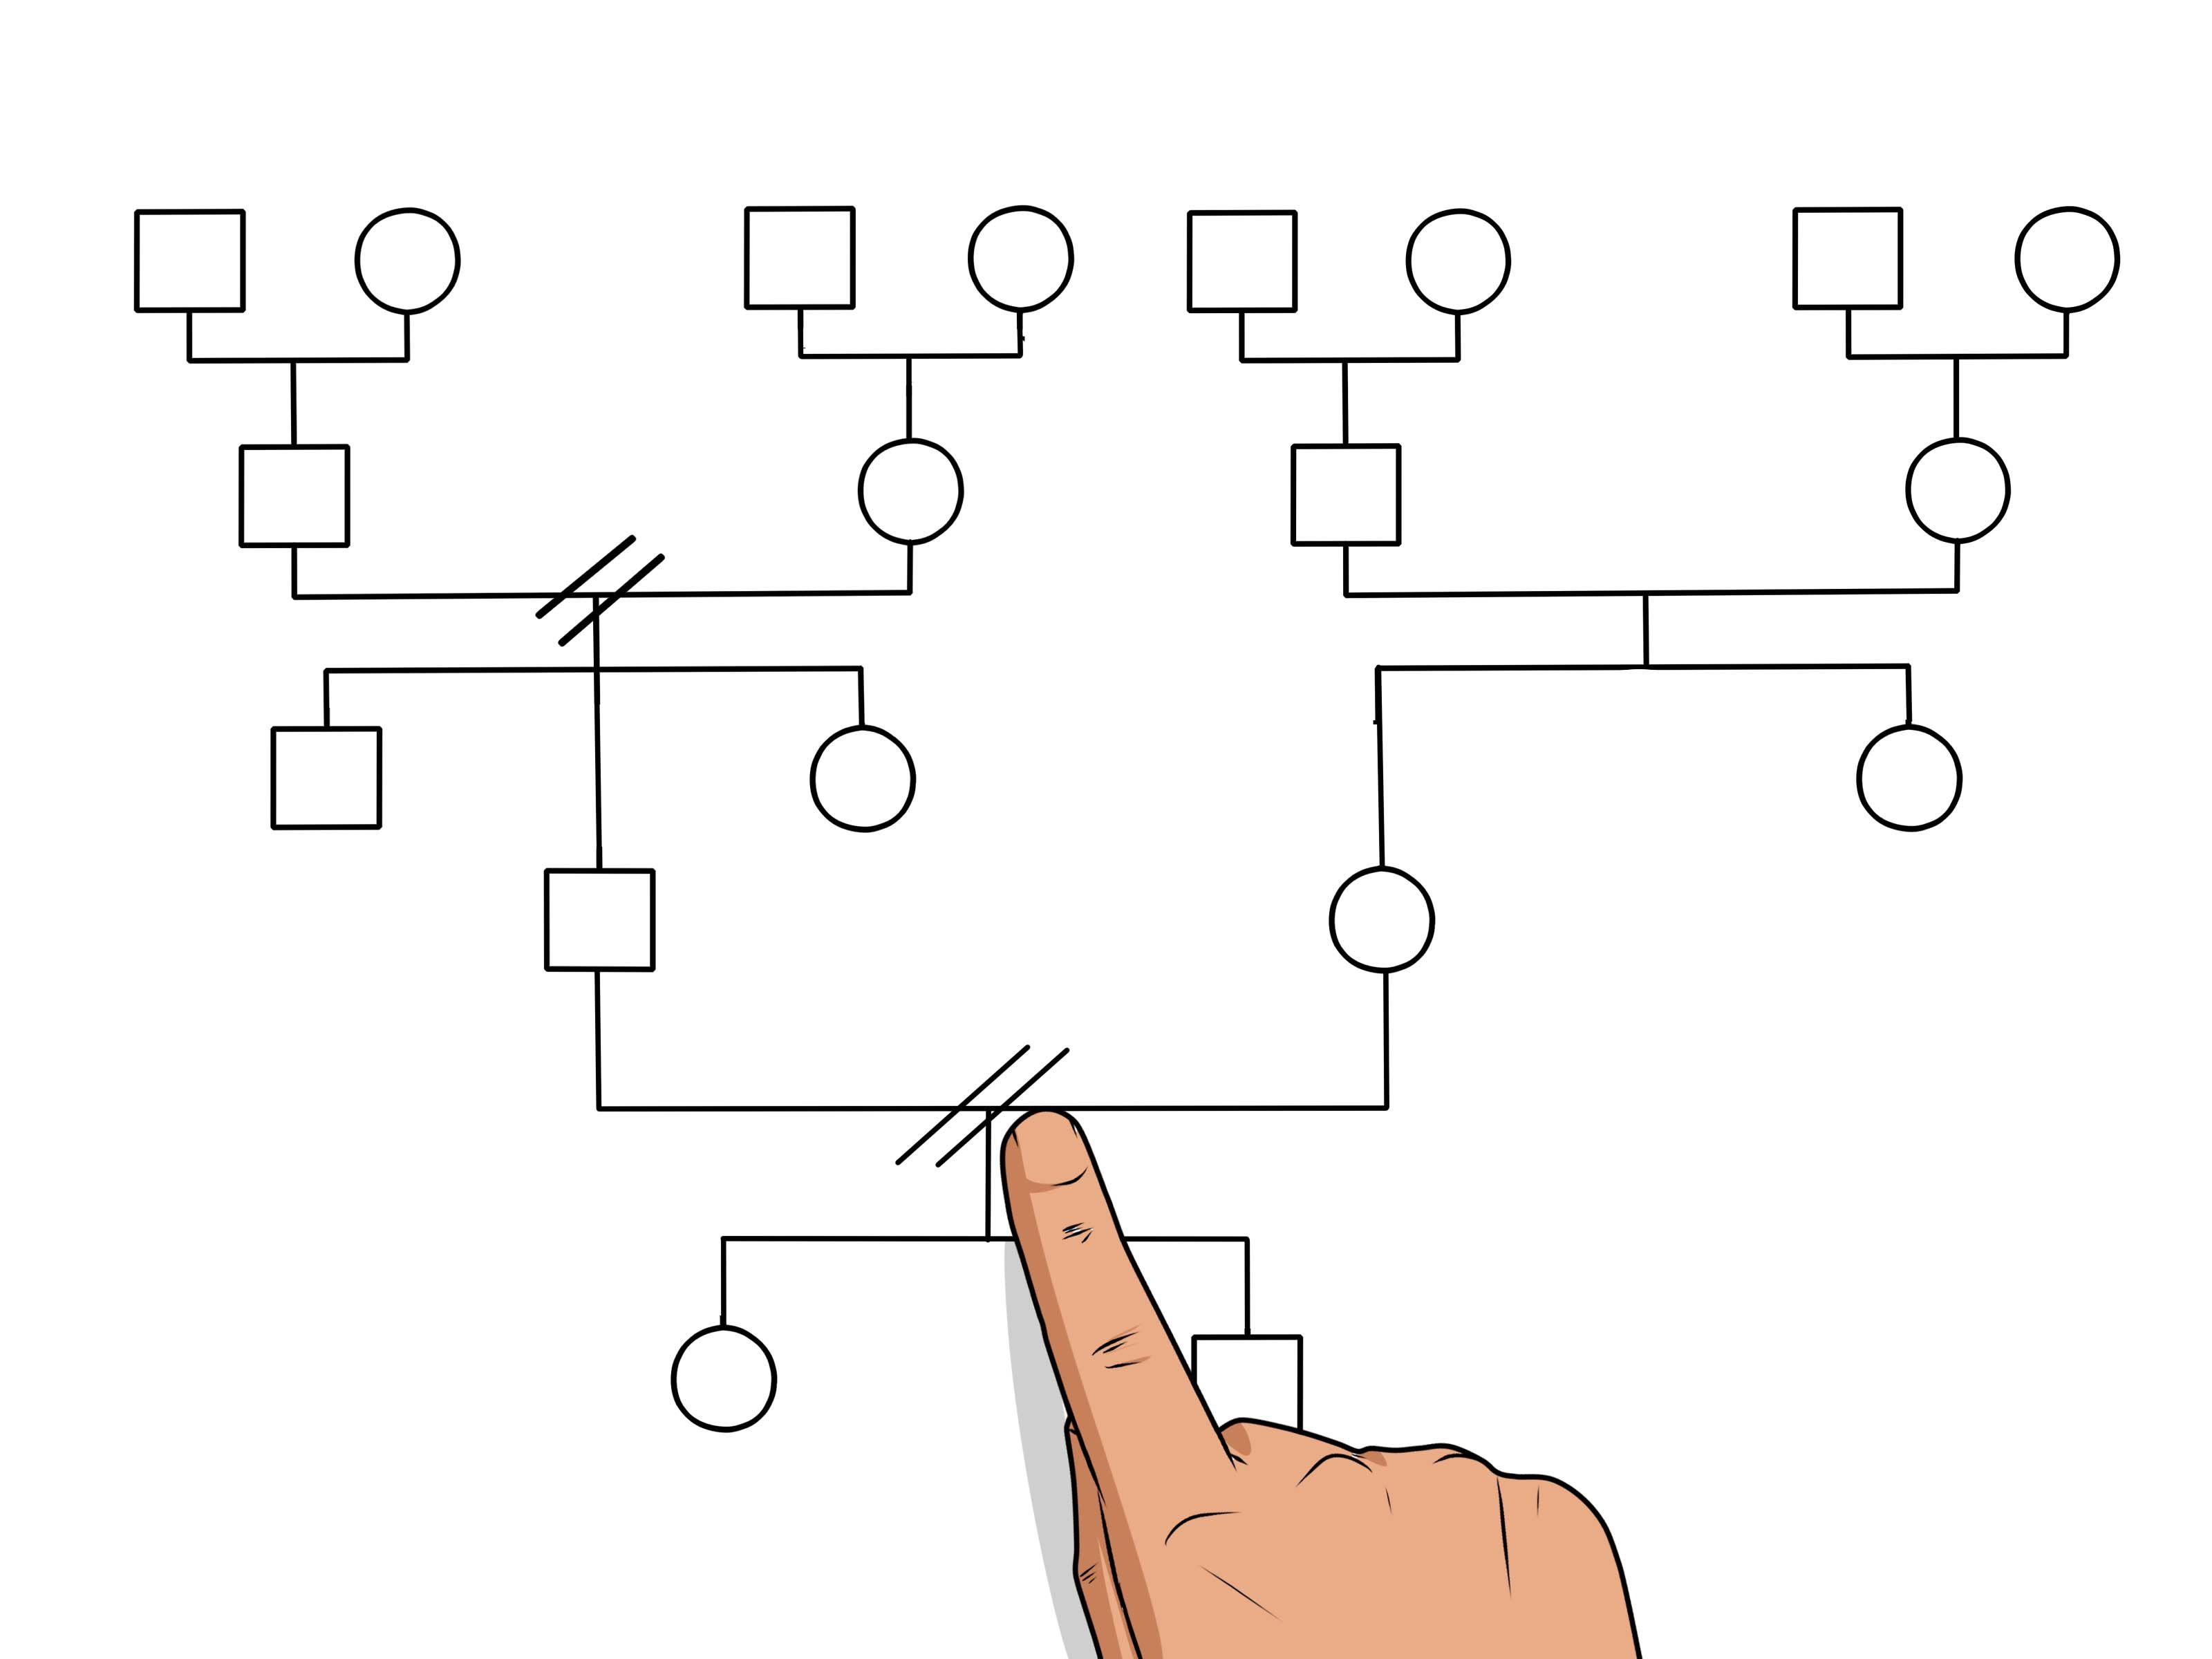 008 Magnificent Family Medical History Genogram Template Example Full